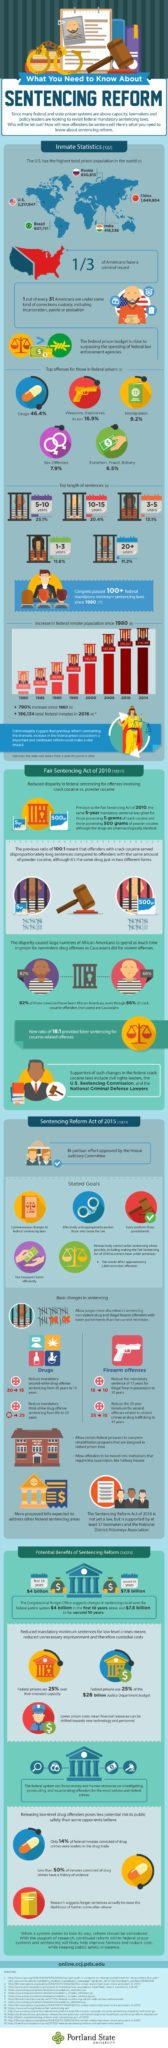 An infographic about federal sentencing reform from Portland State University online.